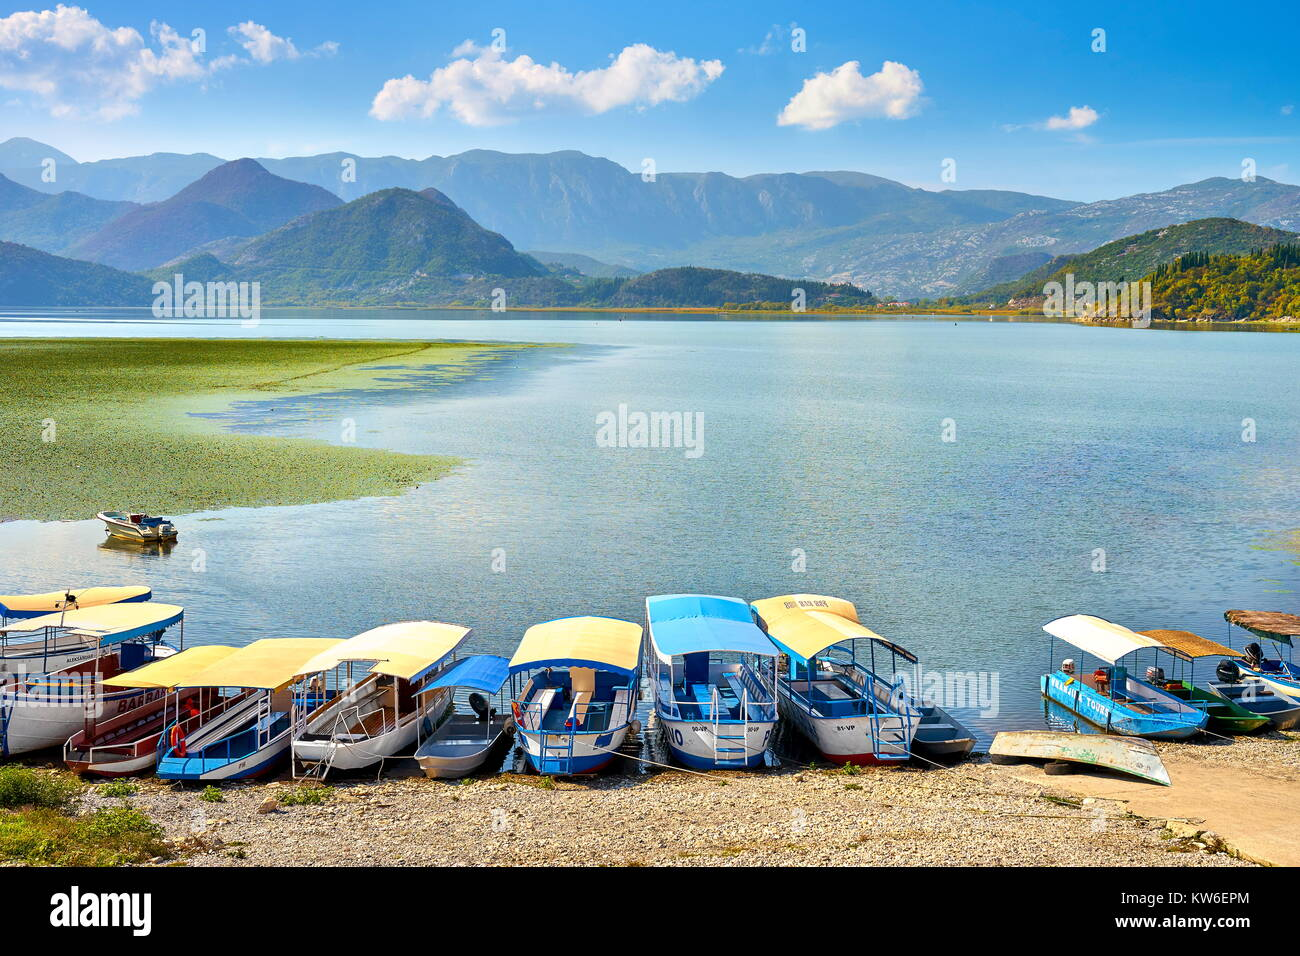 Excursion boats waiting for tourists, Skadar Lake, Montenegro - Stock Image